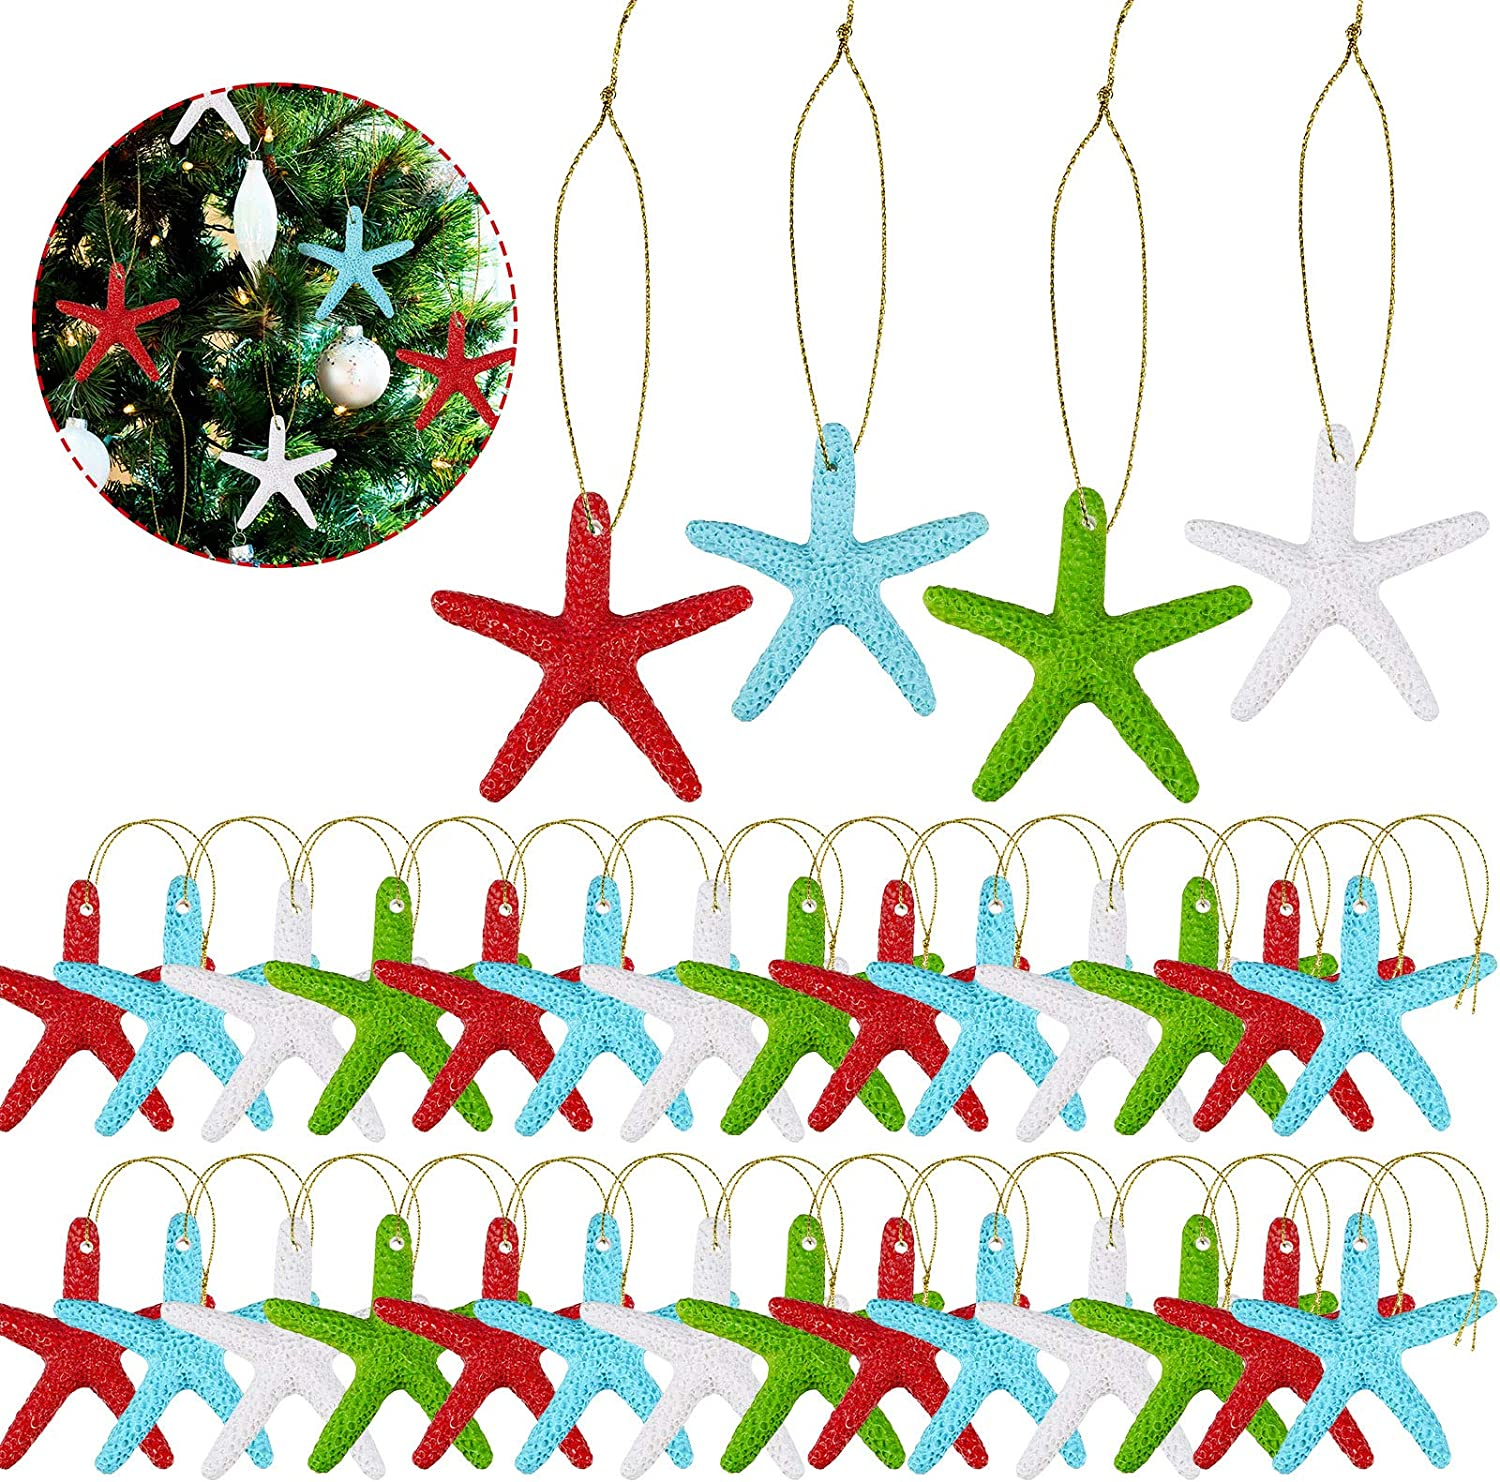 32 Pieces Multi-colored Resin Pencil Finger Starfish with Gold Rope Starfish Decorative Ornaments for Christmas Tree Hanging Ornaments Beach Theme Wedding Home Decor and DIY Craft Project, 2.3 Inches